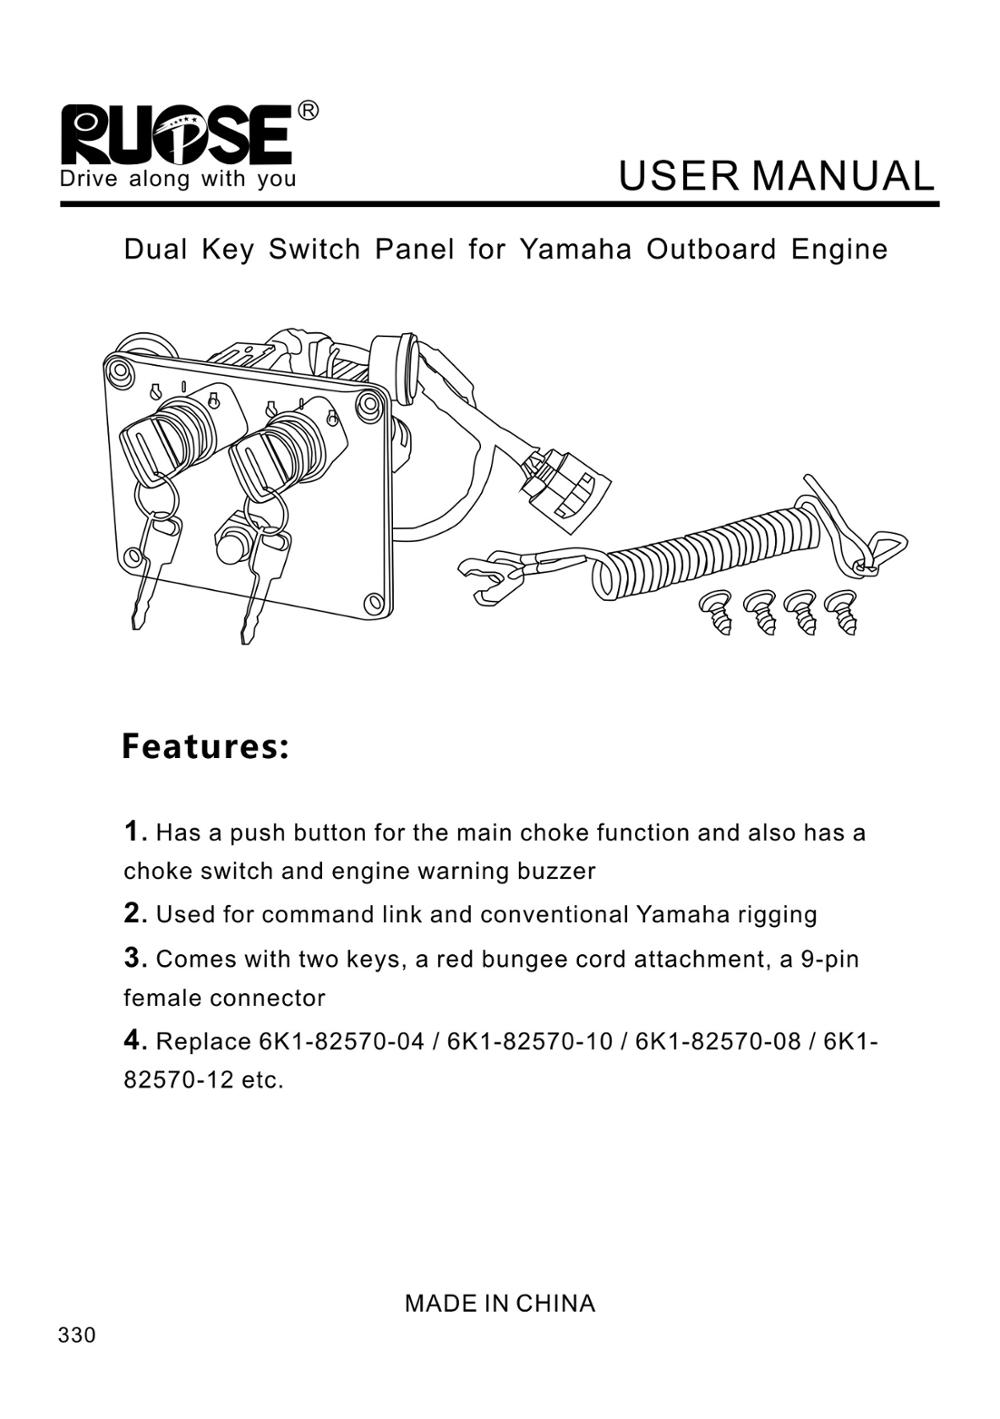 dual engine key switch panel set for yamaha outboard engine 6k1-82570-04  the routine podcast